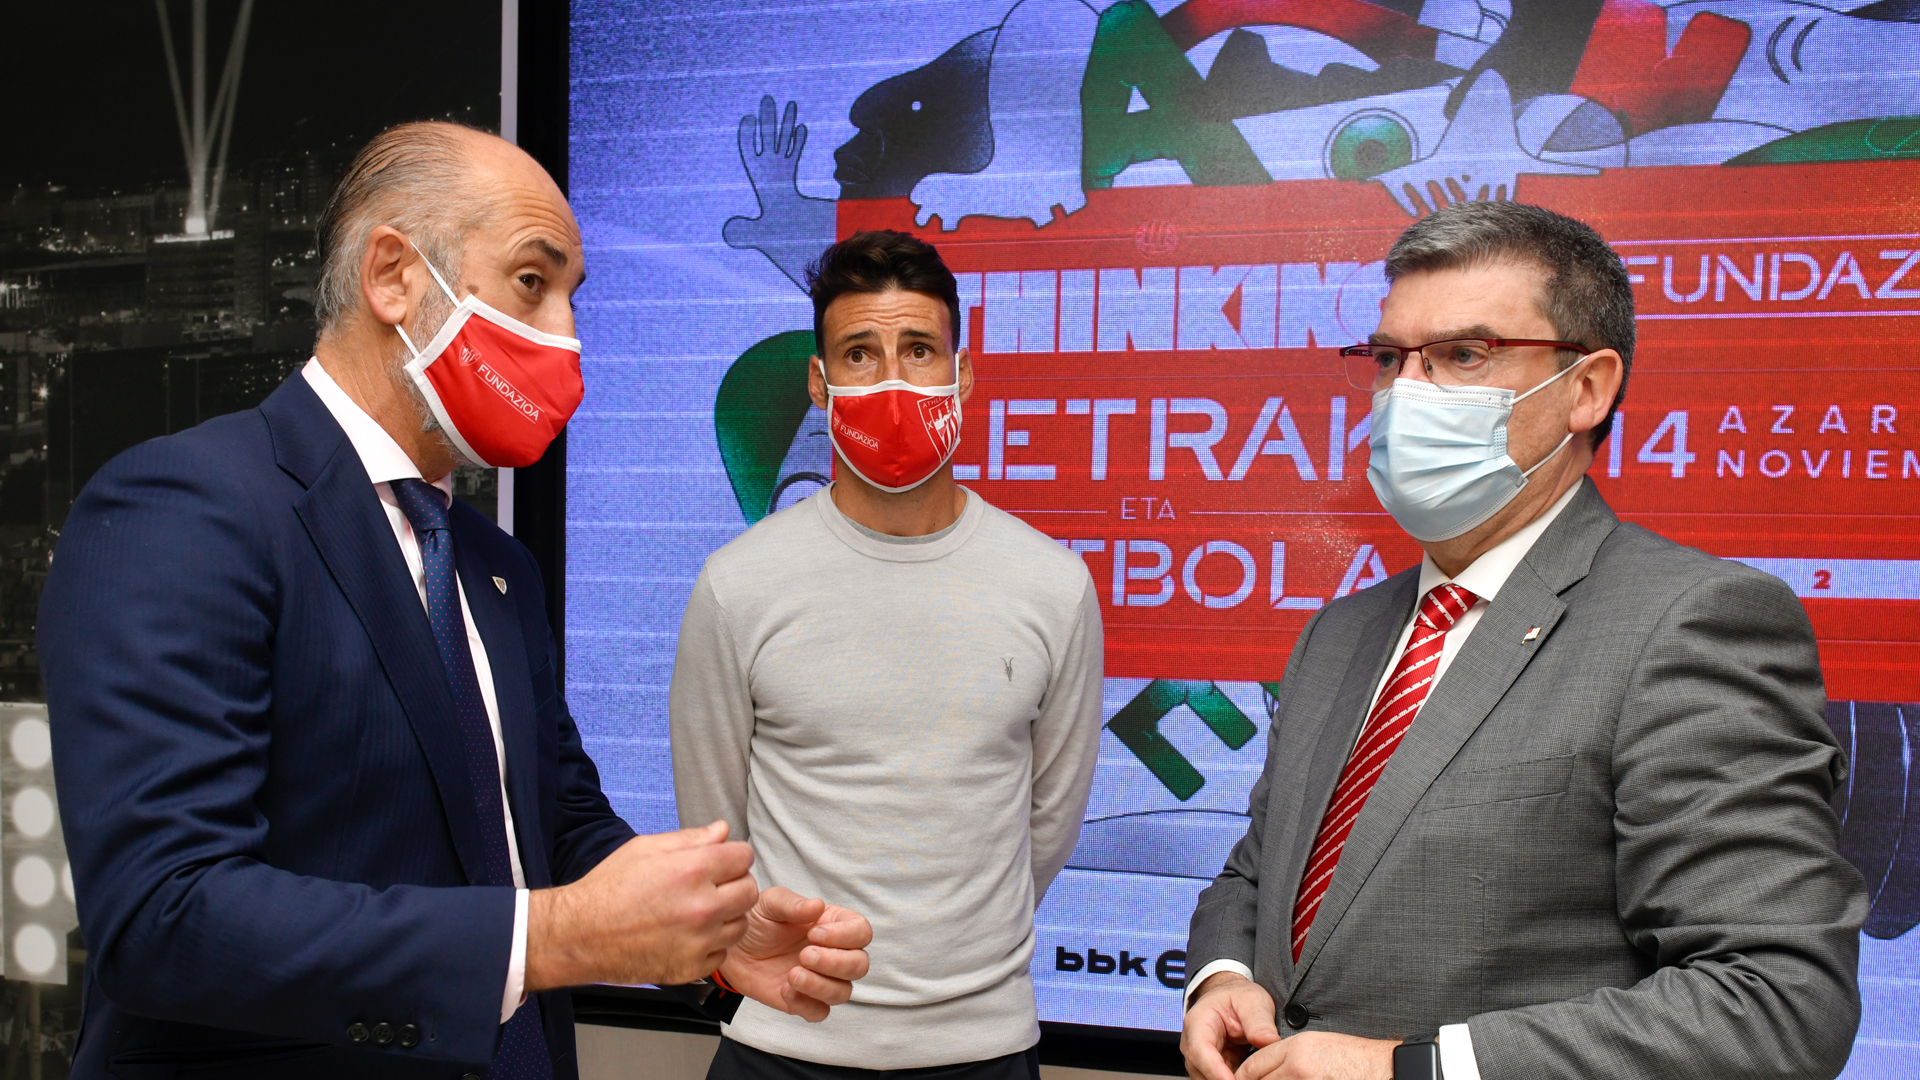 Aduriz kicks off Thinking, Letrak eta Futbola